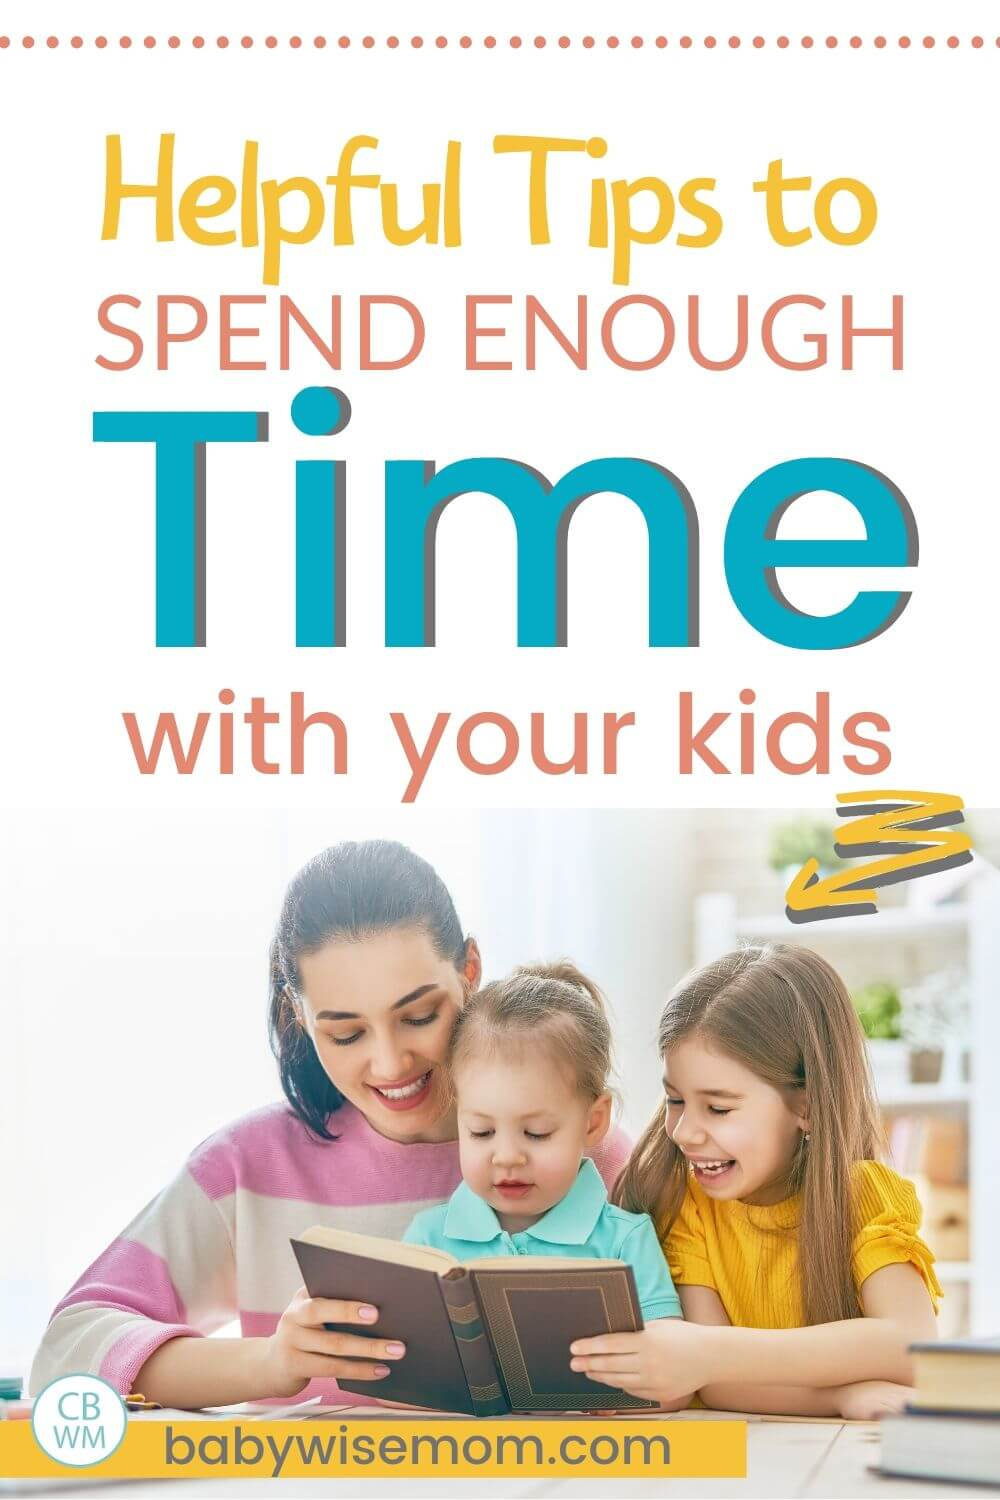 Tips to spend enough time with your kids pinnable image